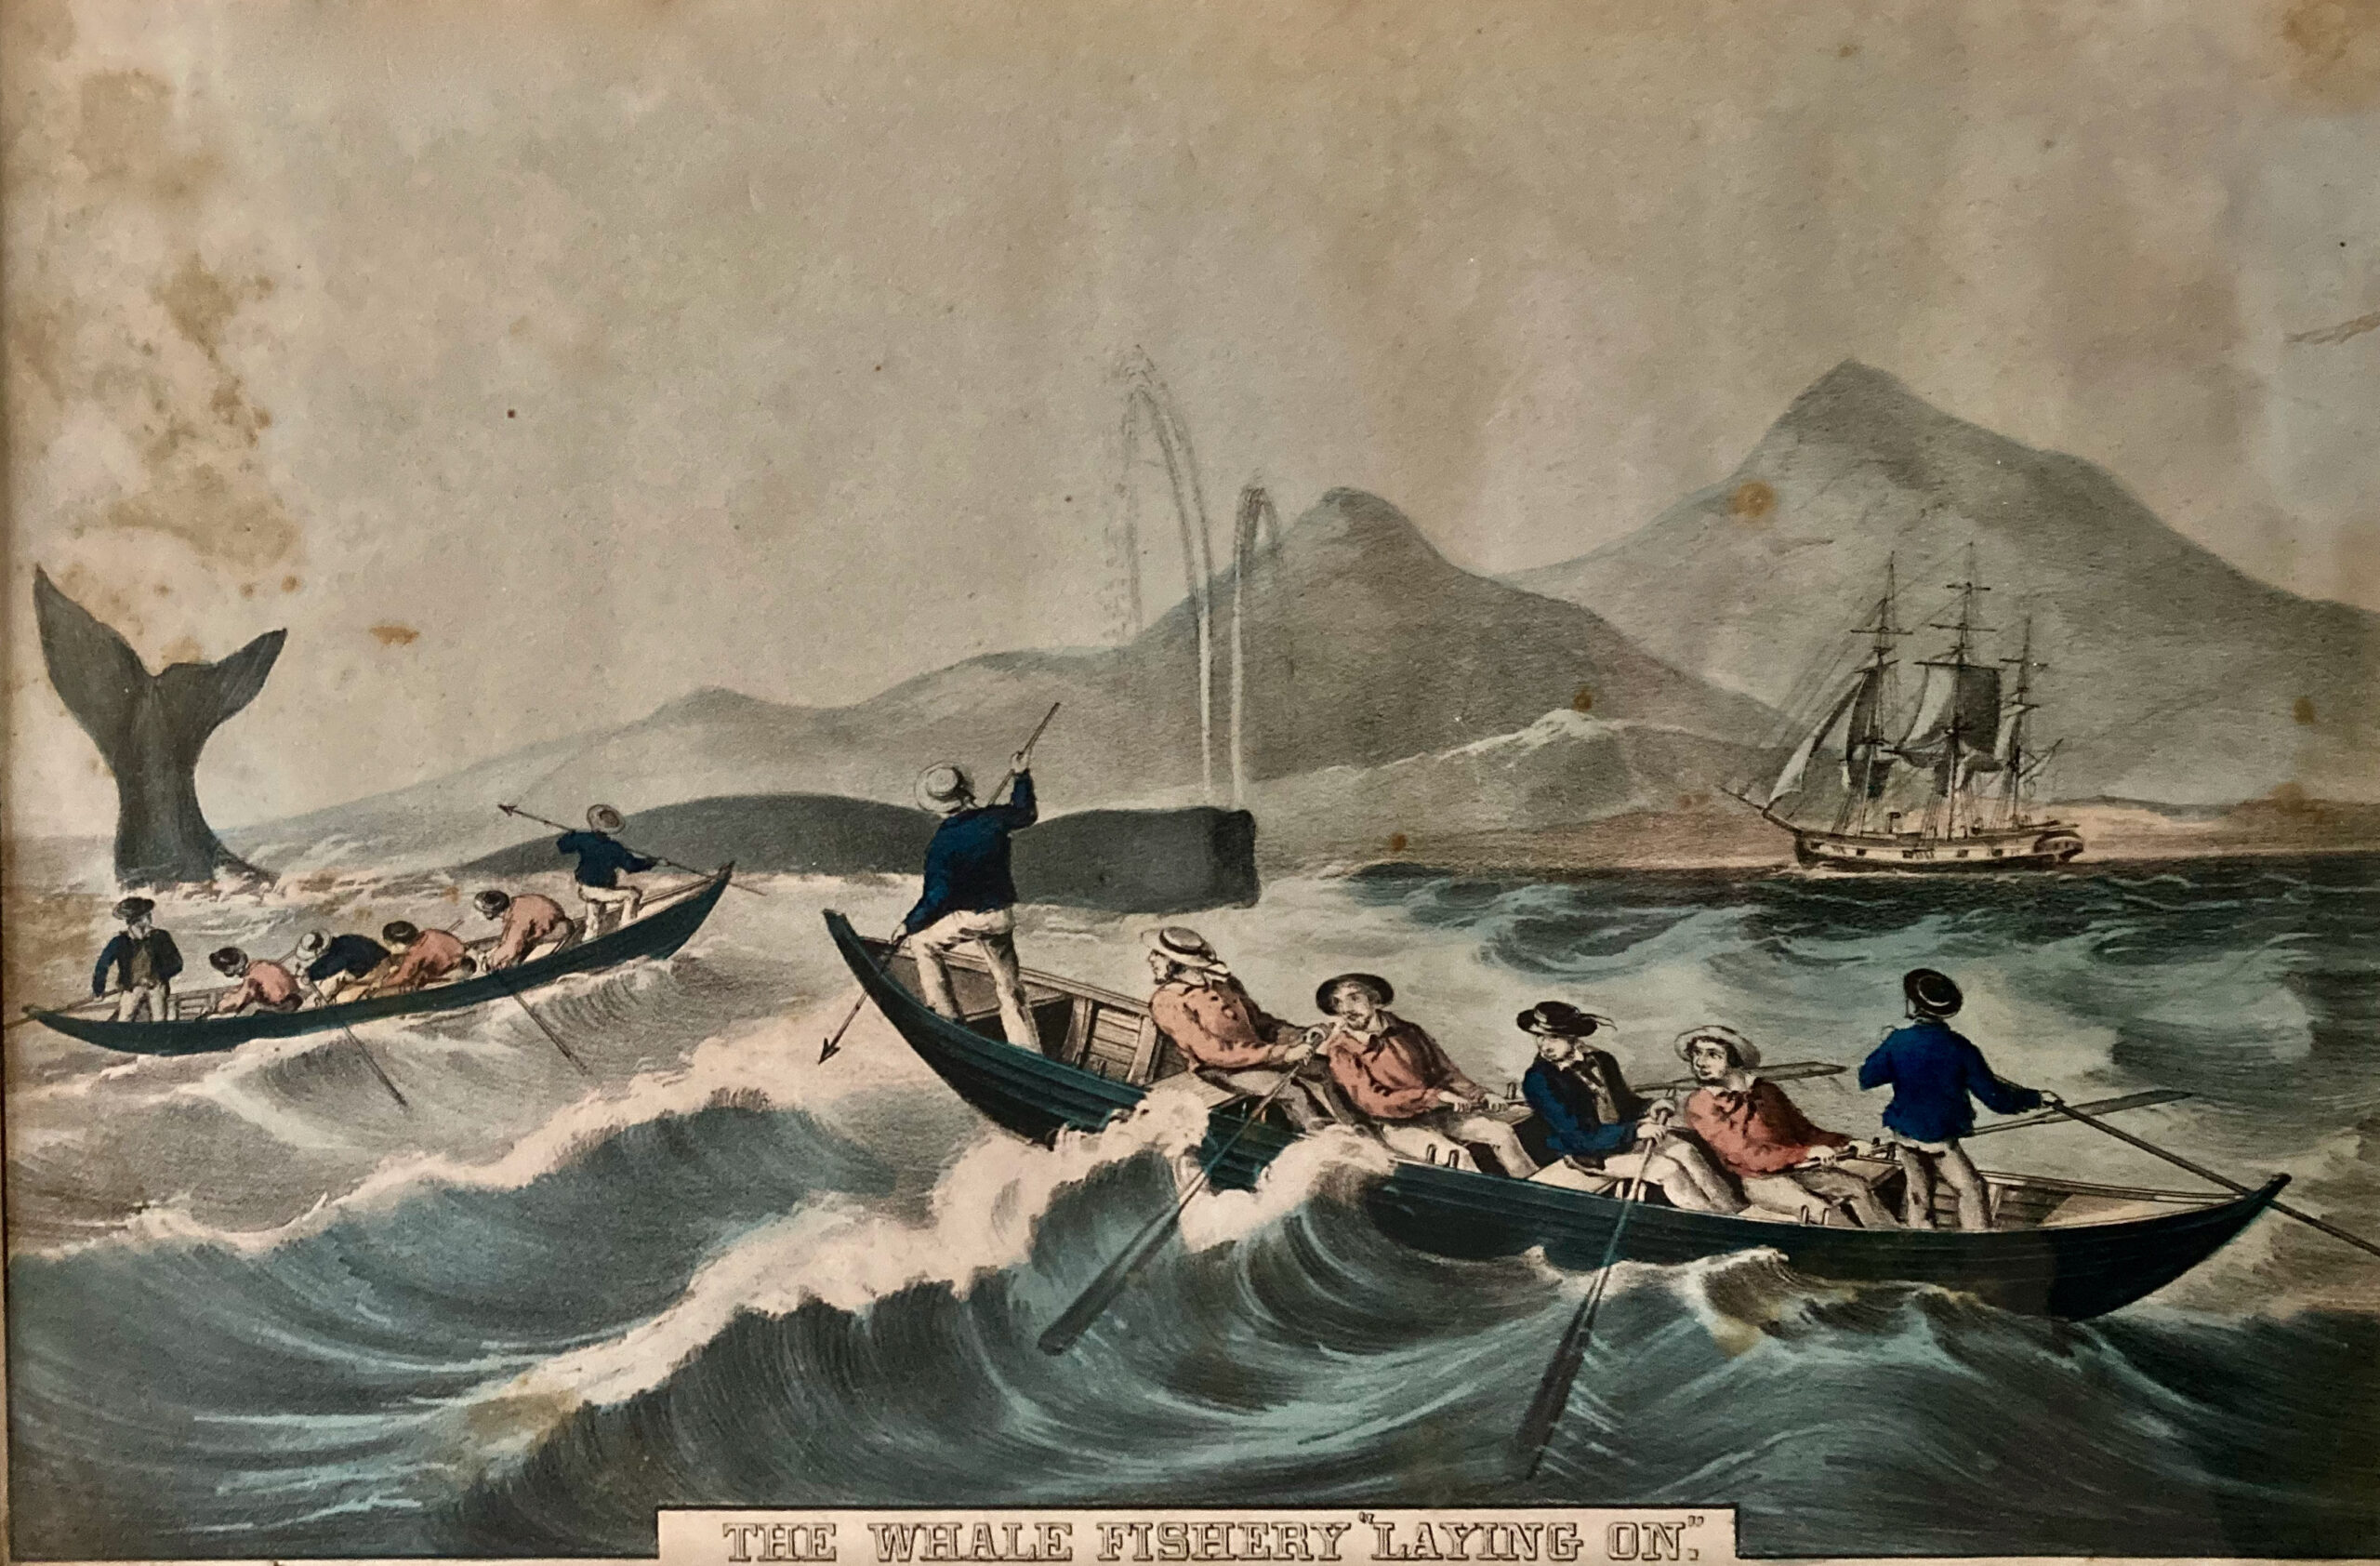 Boat Tour: Blowholes, Blubber, & Breaches. Whaling Tales on the Thames.